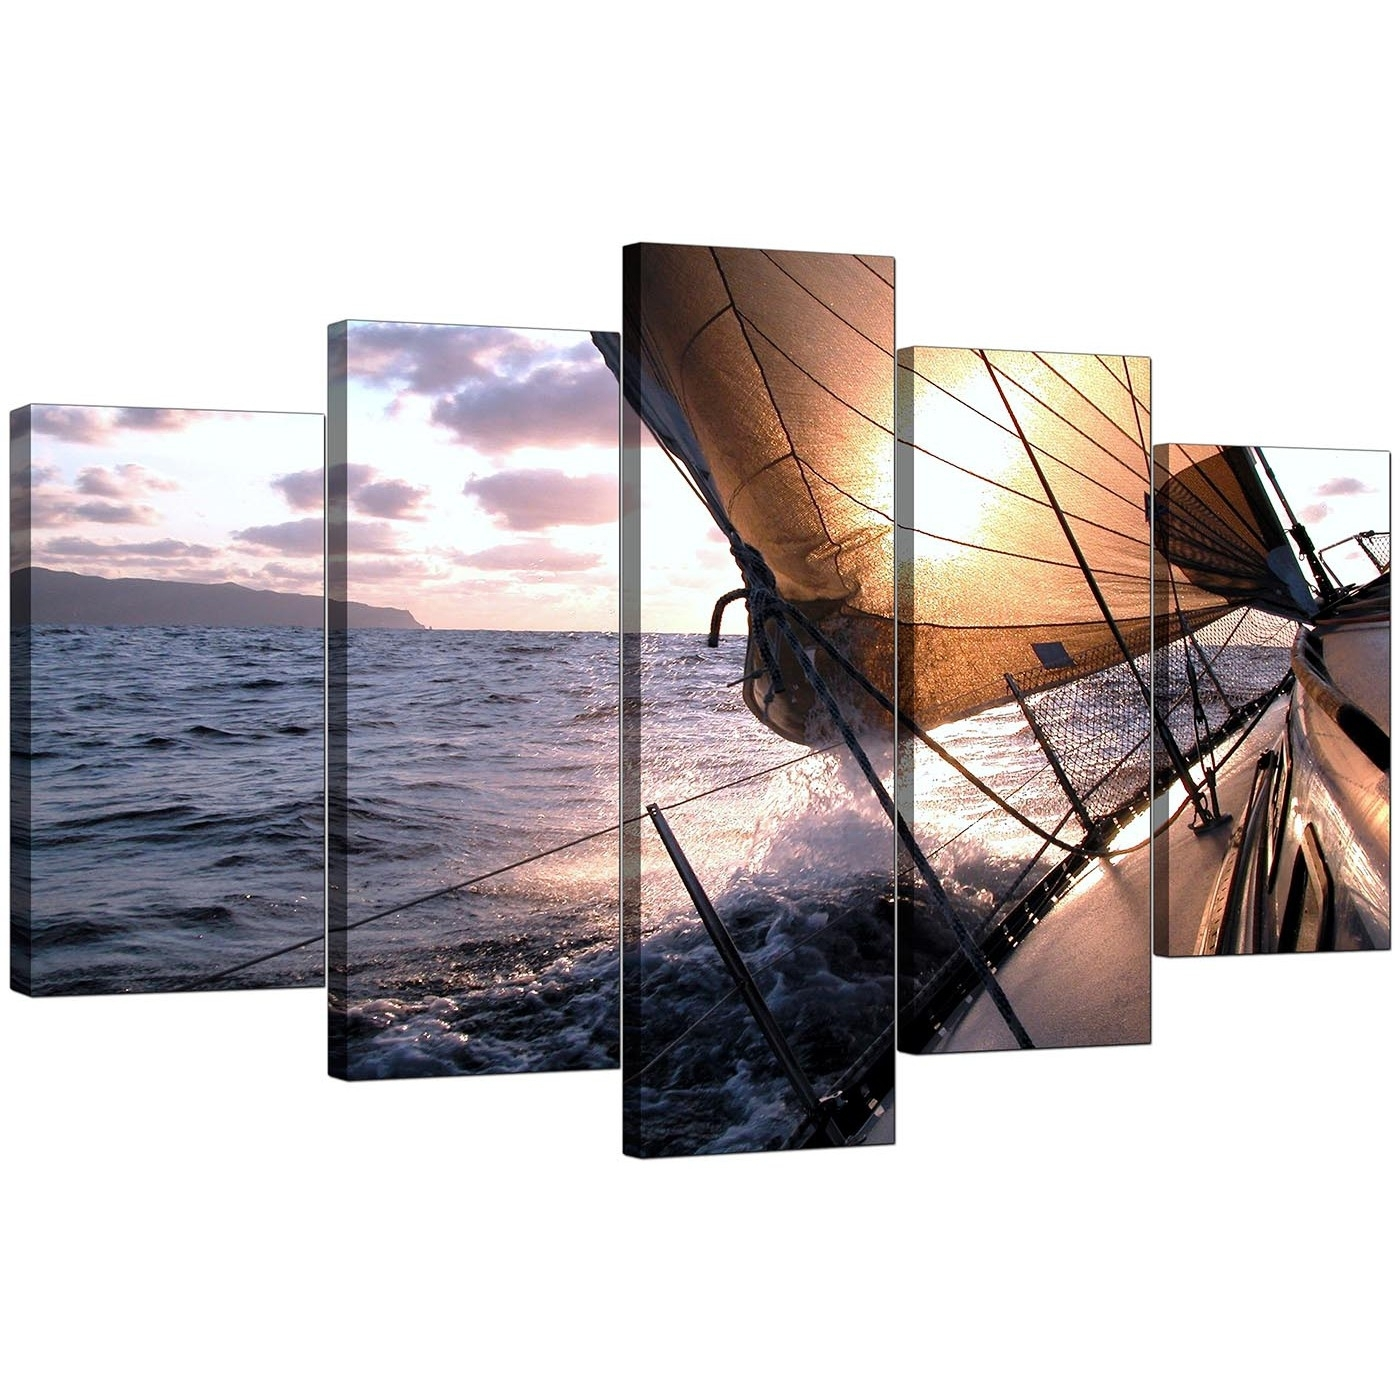 Boat Canvas Prints Uk For Your Living Room - 5 Piece intended for 5 Piece Wall Art (Image 11 of 20)